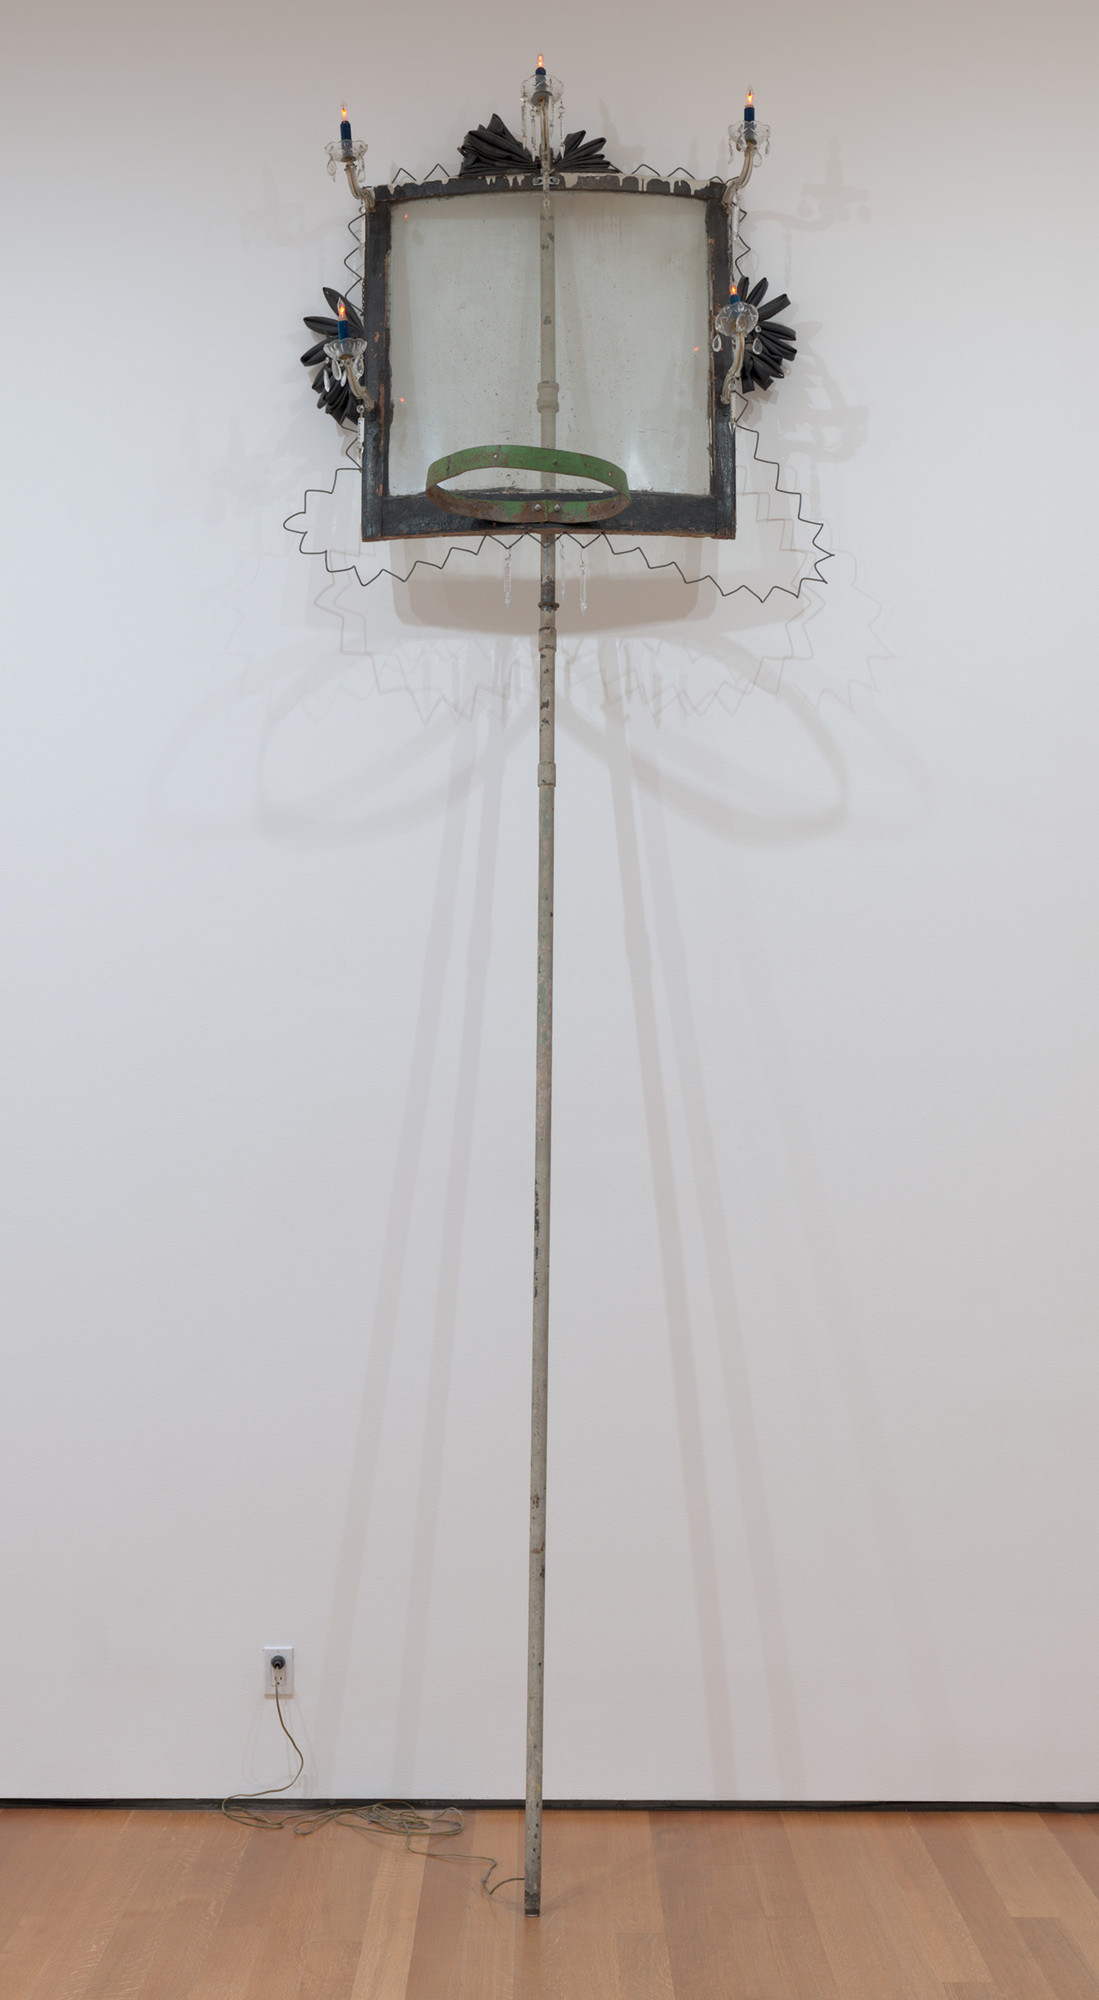 "David Hammons. High Falutin'. 1990. Metal (some parts painted with oil), oil on wood, chandelier parts, rubber, velvet, plastic, and light bulbs, 13' 2"" x 48"" x 30 1/2"" (396 x 122 x 77.5 cm). Robert and Meryl Meltzer Fund and purchase. © 2019 David Hammons"